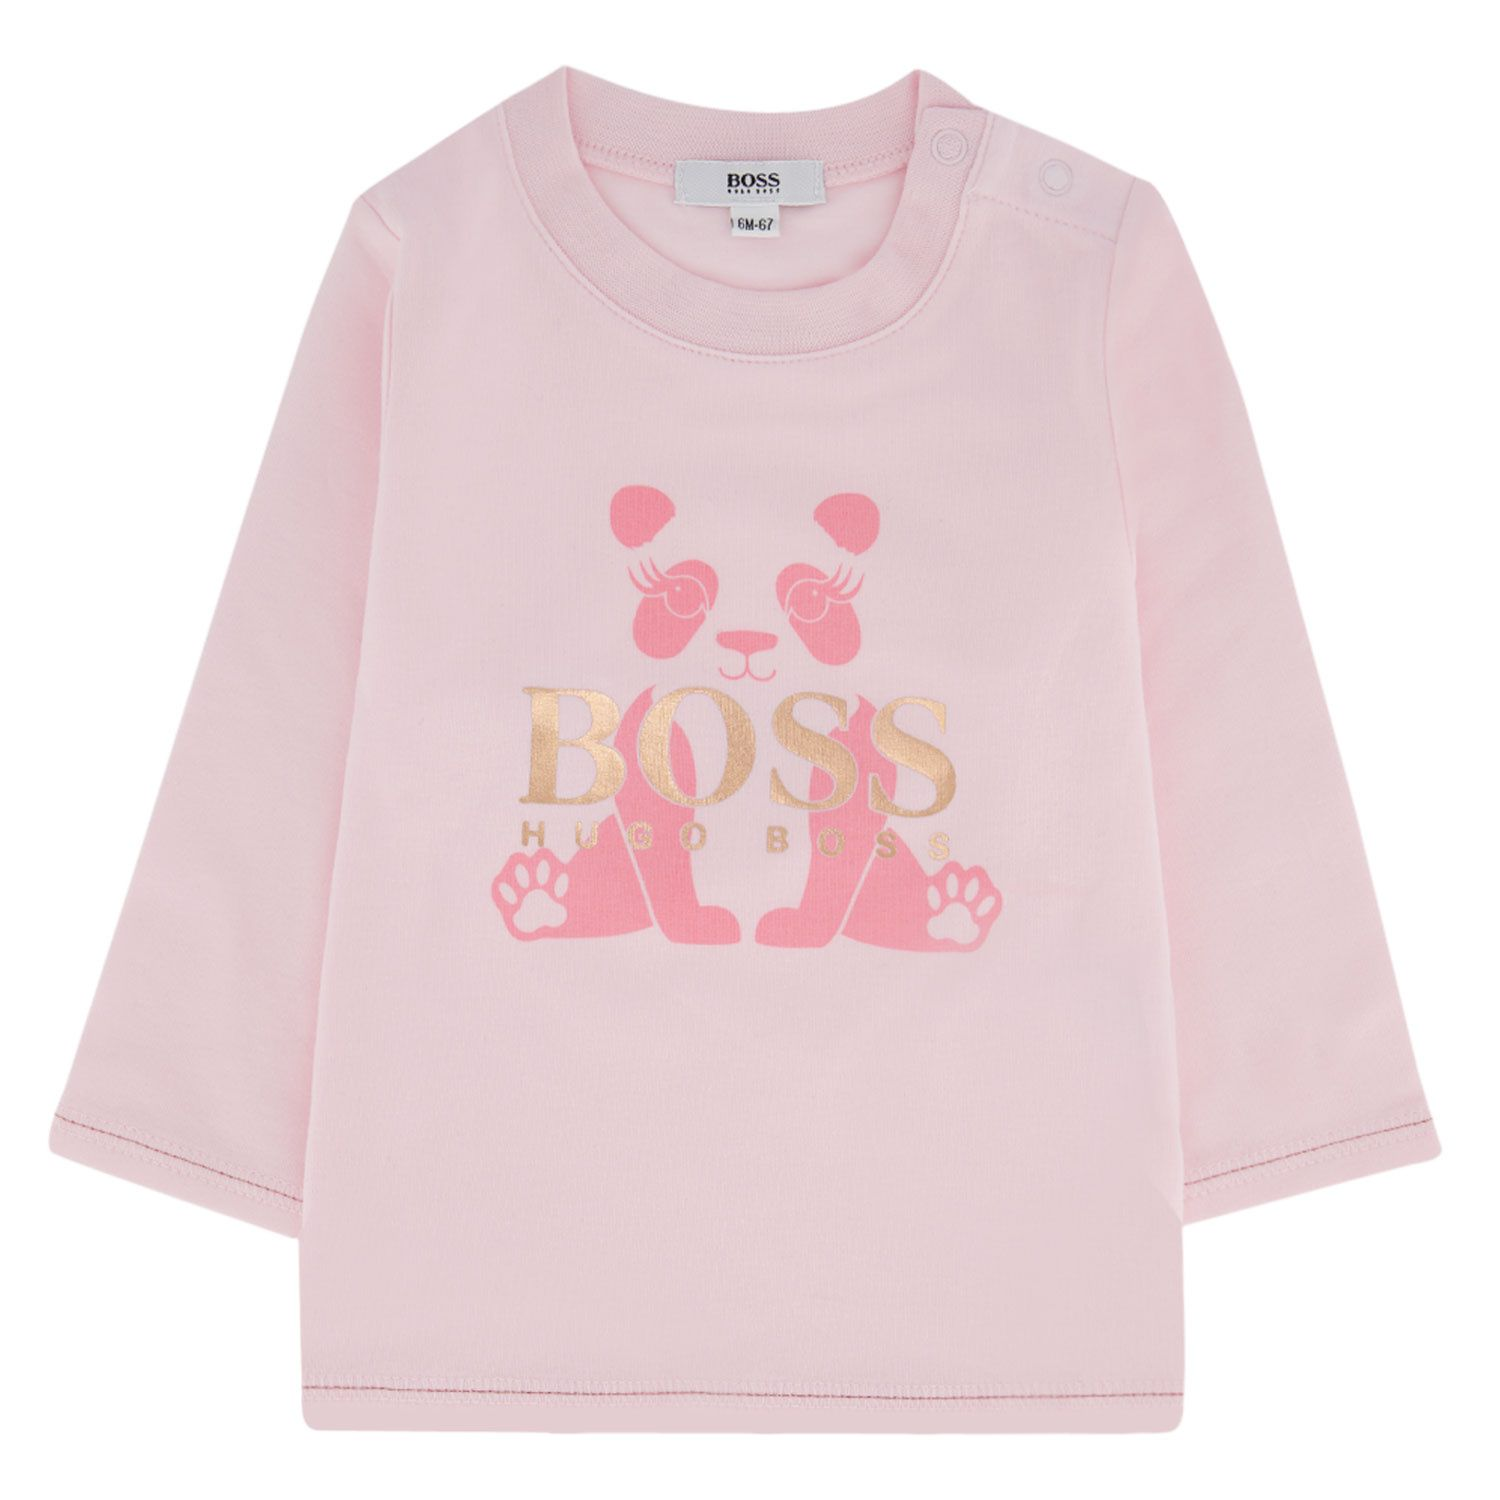 Picture of Boss J95297 baby shirt light pink